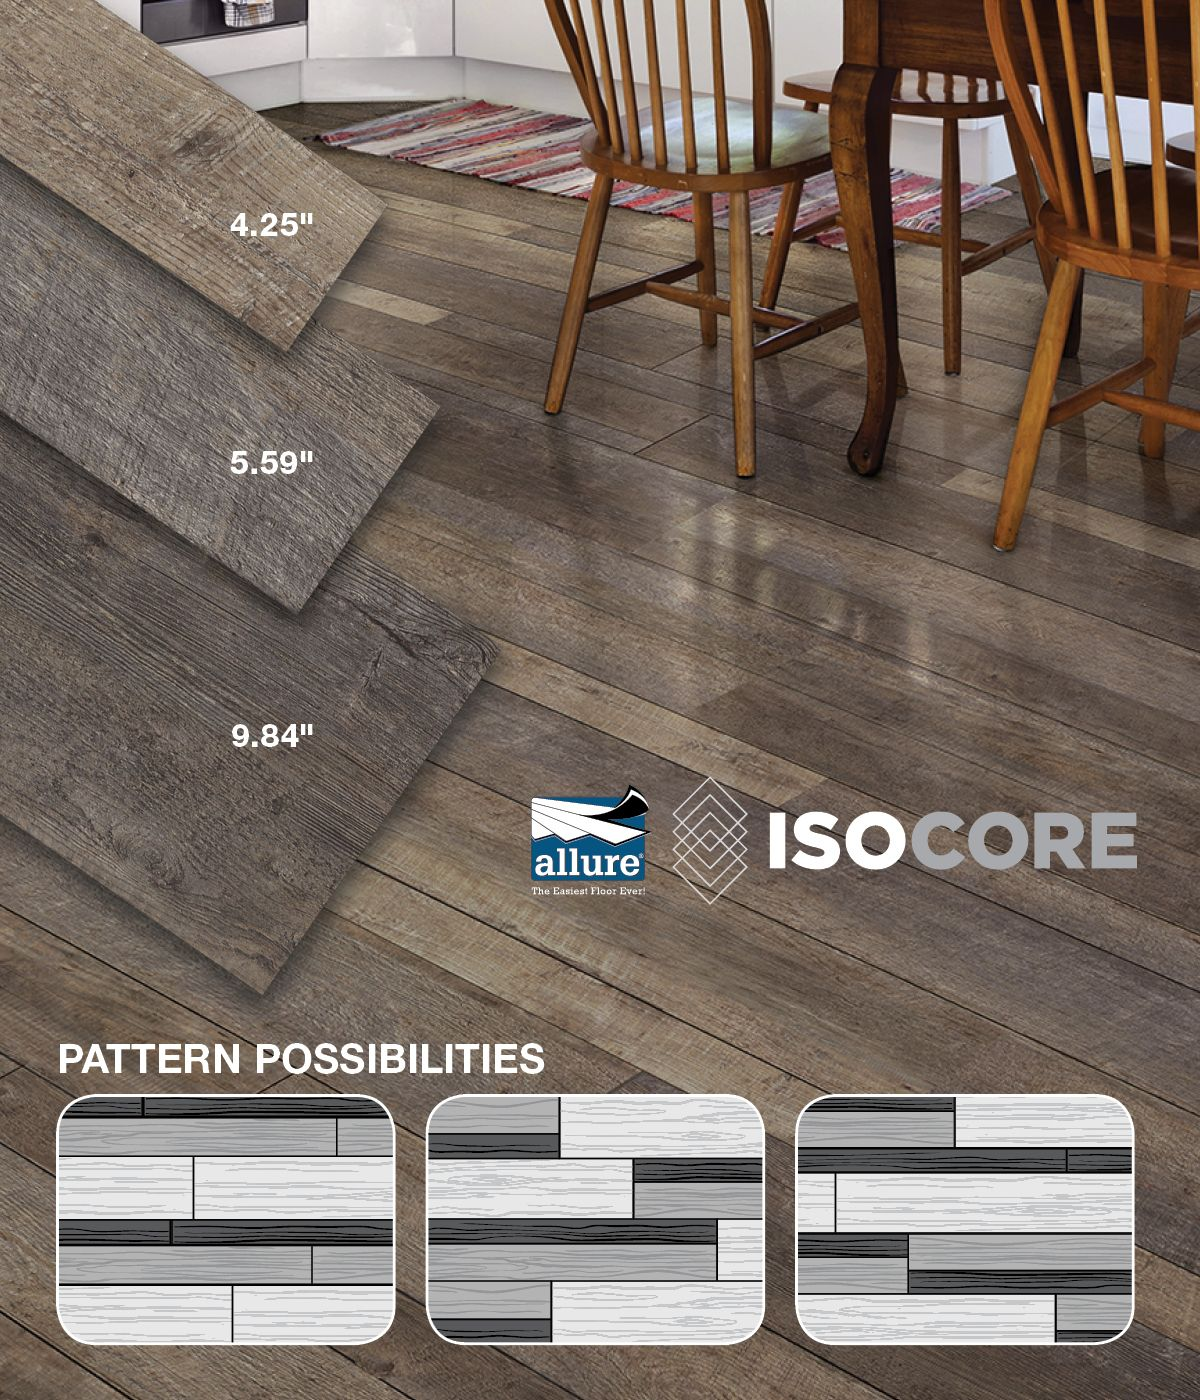 You Can Install Allure Isocore Multi Width Vinyl Plank Flooring In